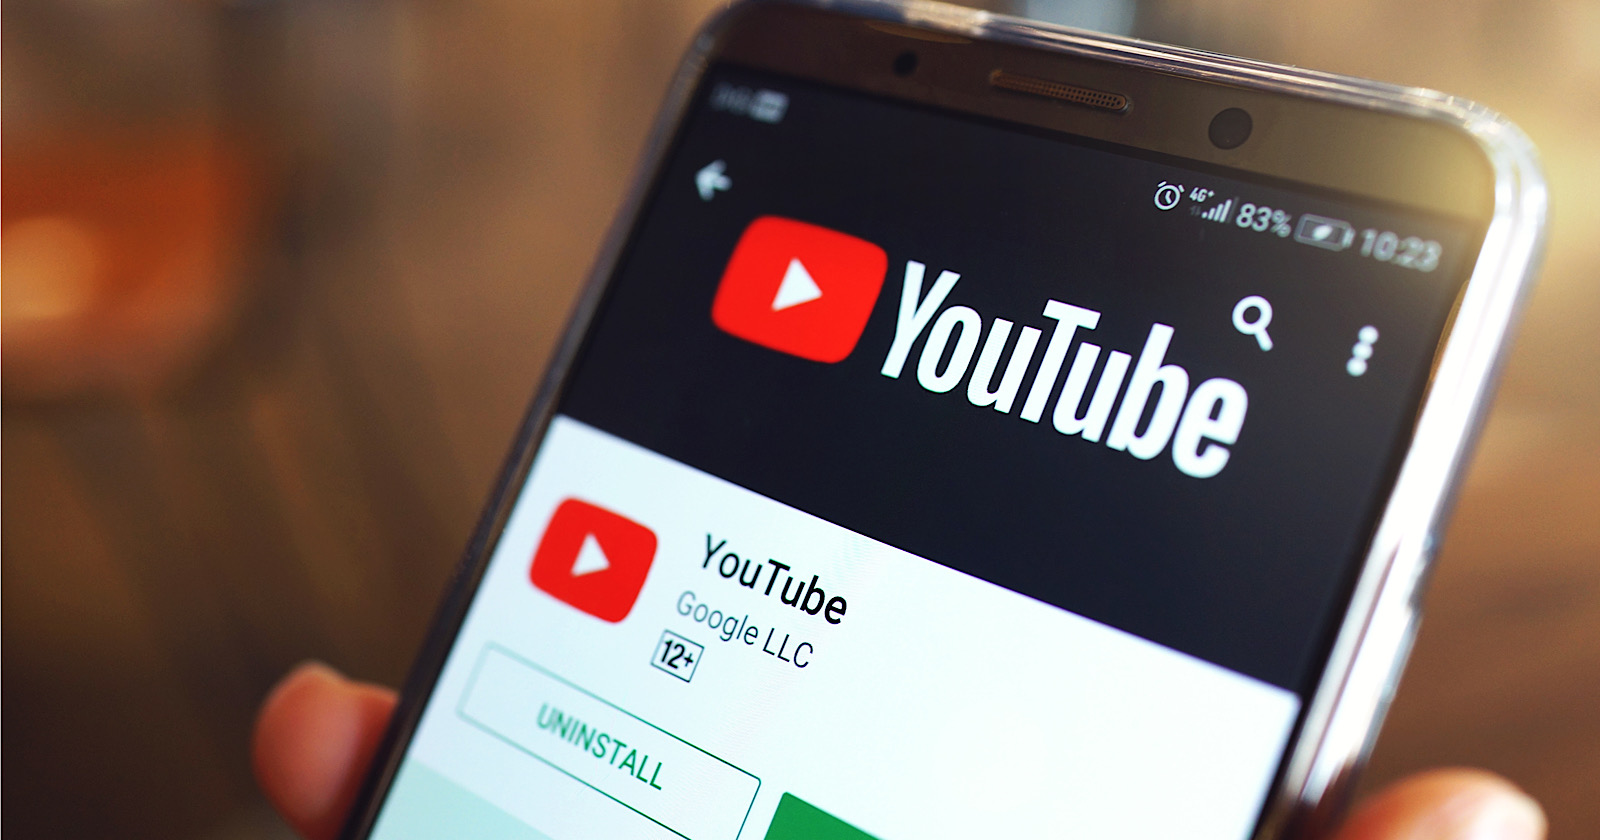 YouTube Replaces the 'Trending' Tab With New 'Explore' Tab on Mobile